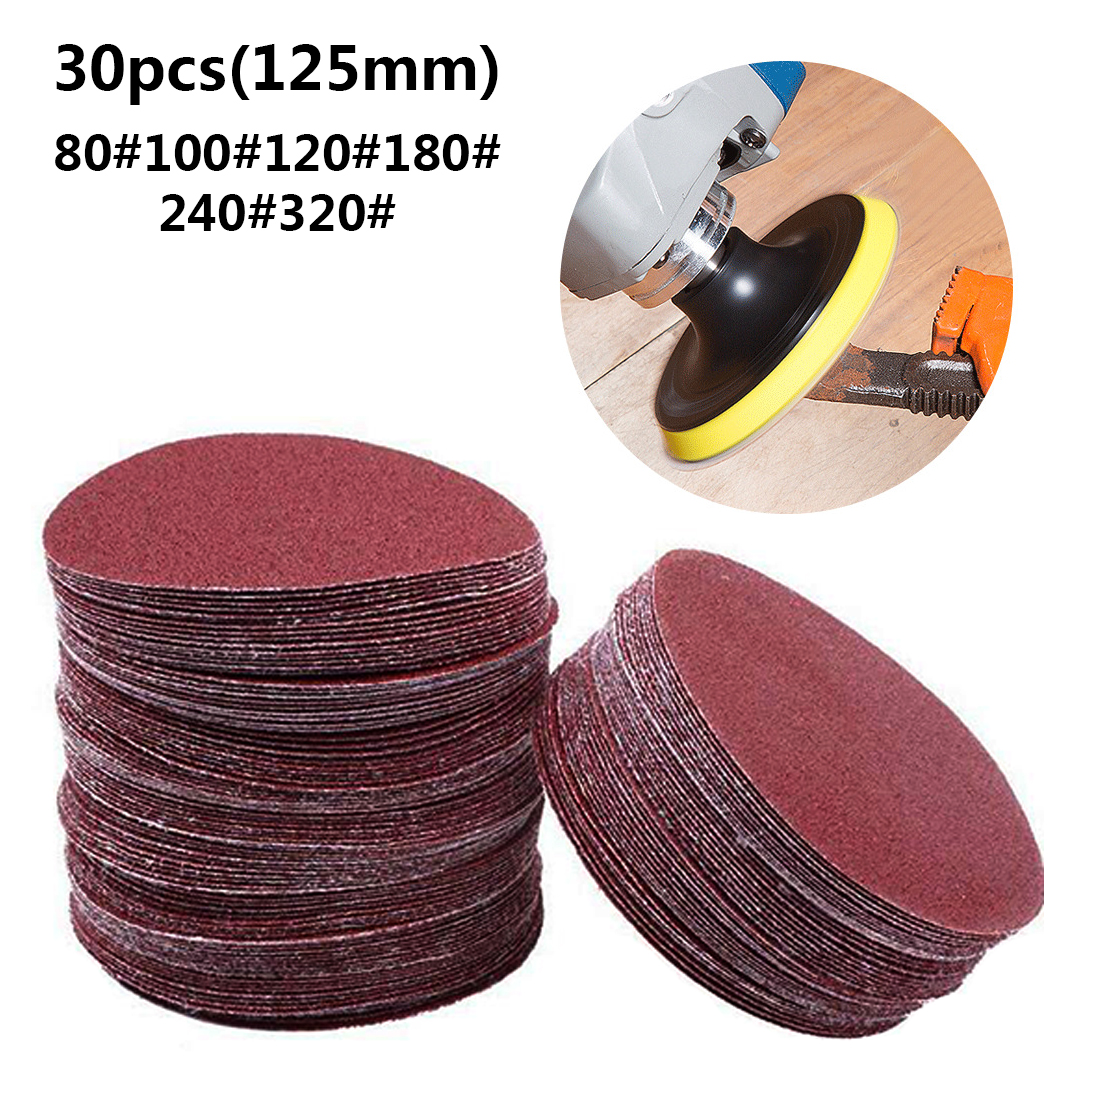 5inch 125mm 30pcs/set Round Sandpaper Disk Sand Sheets Grit 80/100/120/180/240/320 Hook And Loop Sanding Disc For Sander Grits